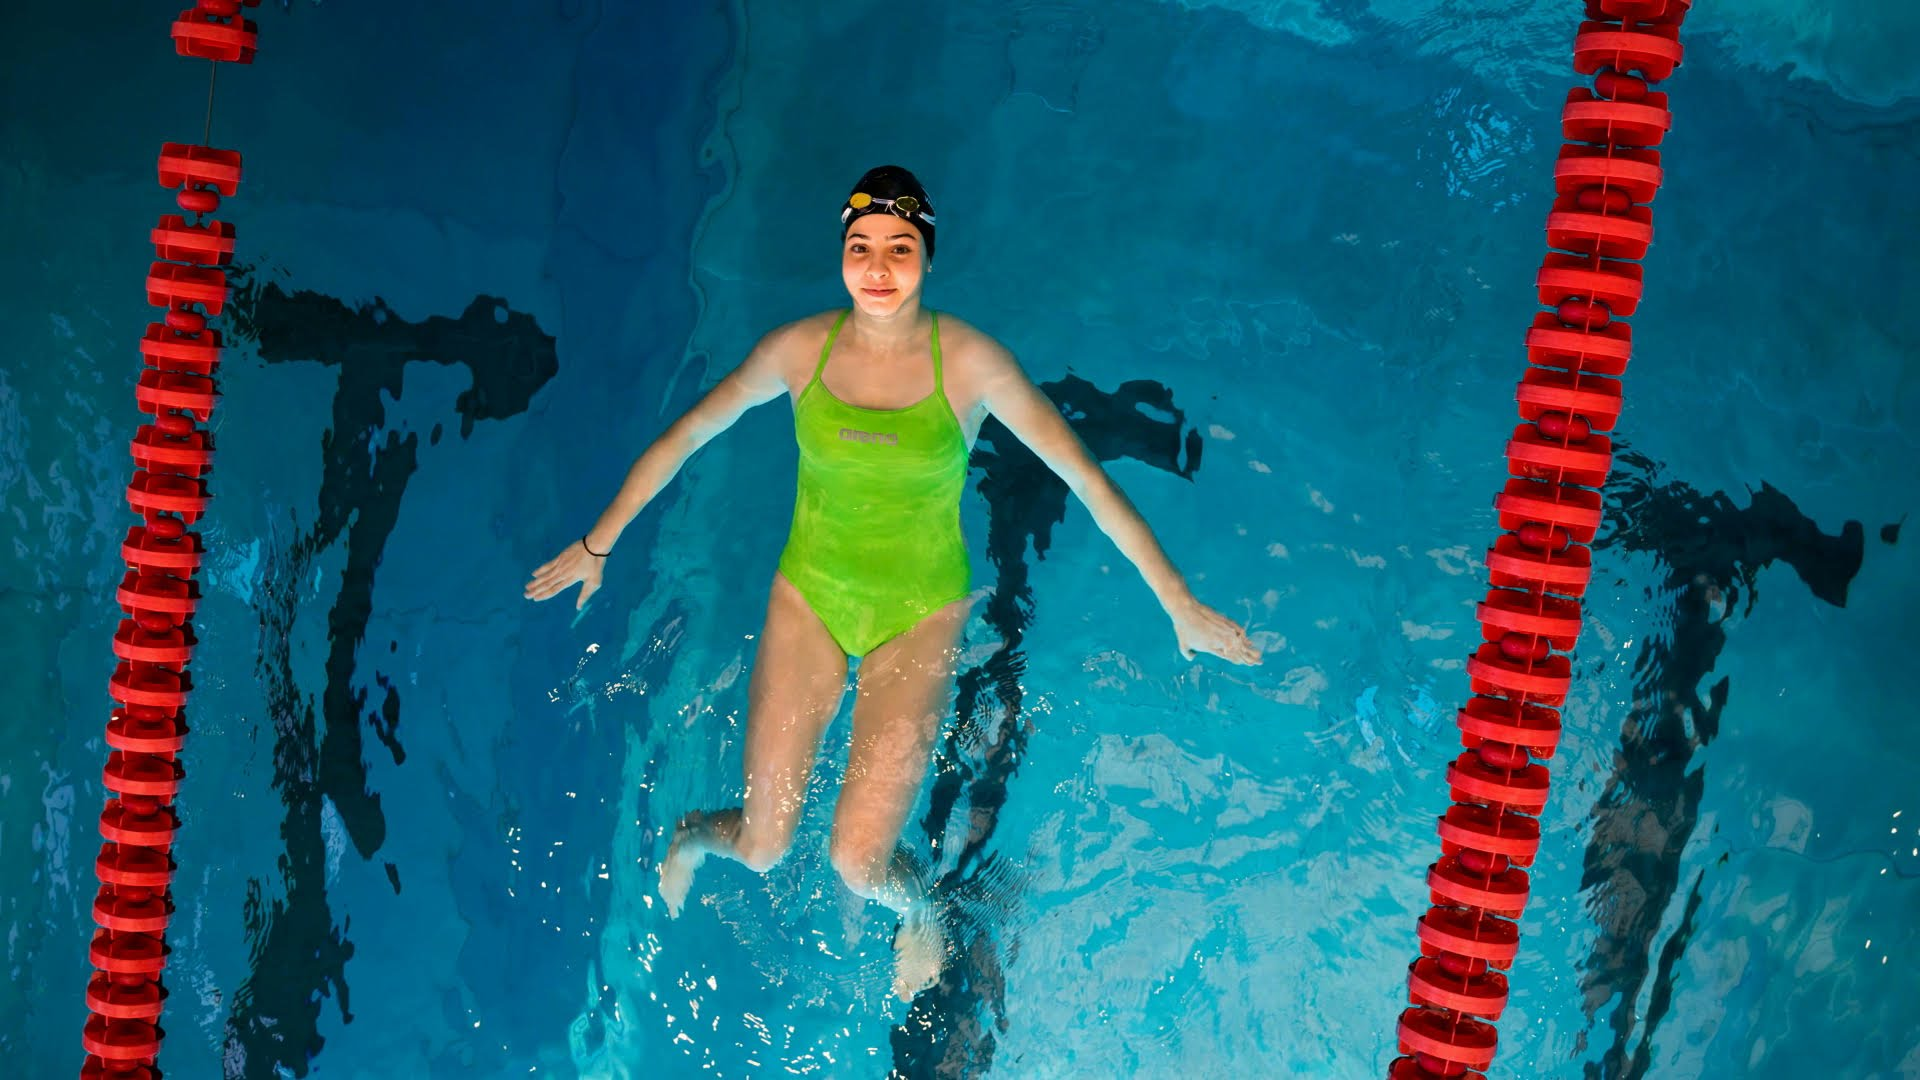 Yusra Mardini swam for the Refugee Olympic Team in the Rio 2016 Olympic Games. Photo By United Nations - https://www.youtube.com/watch?v=Z3WmCUnDRJ4, CC BY-SA 4.0, https://commons.wikimedia.org/w/index.php?curid=49977929